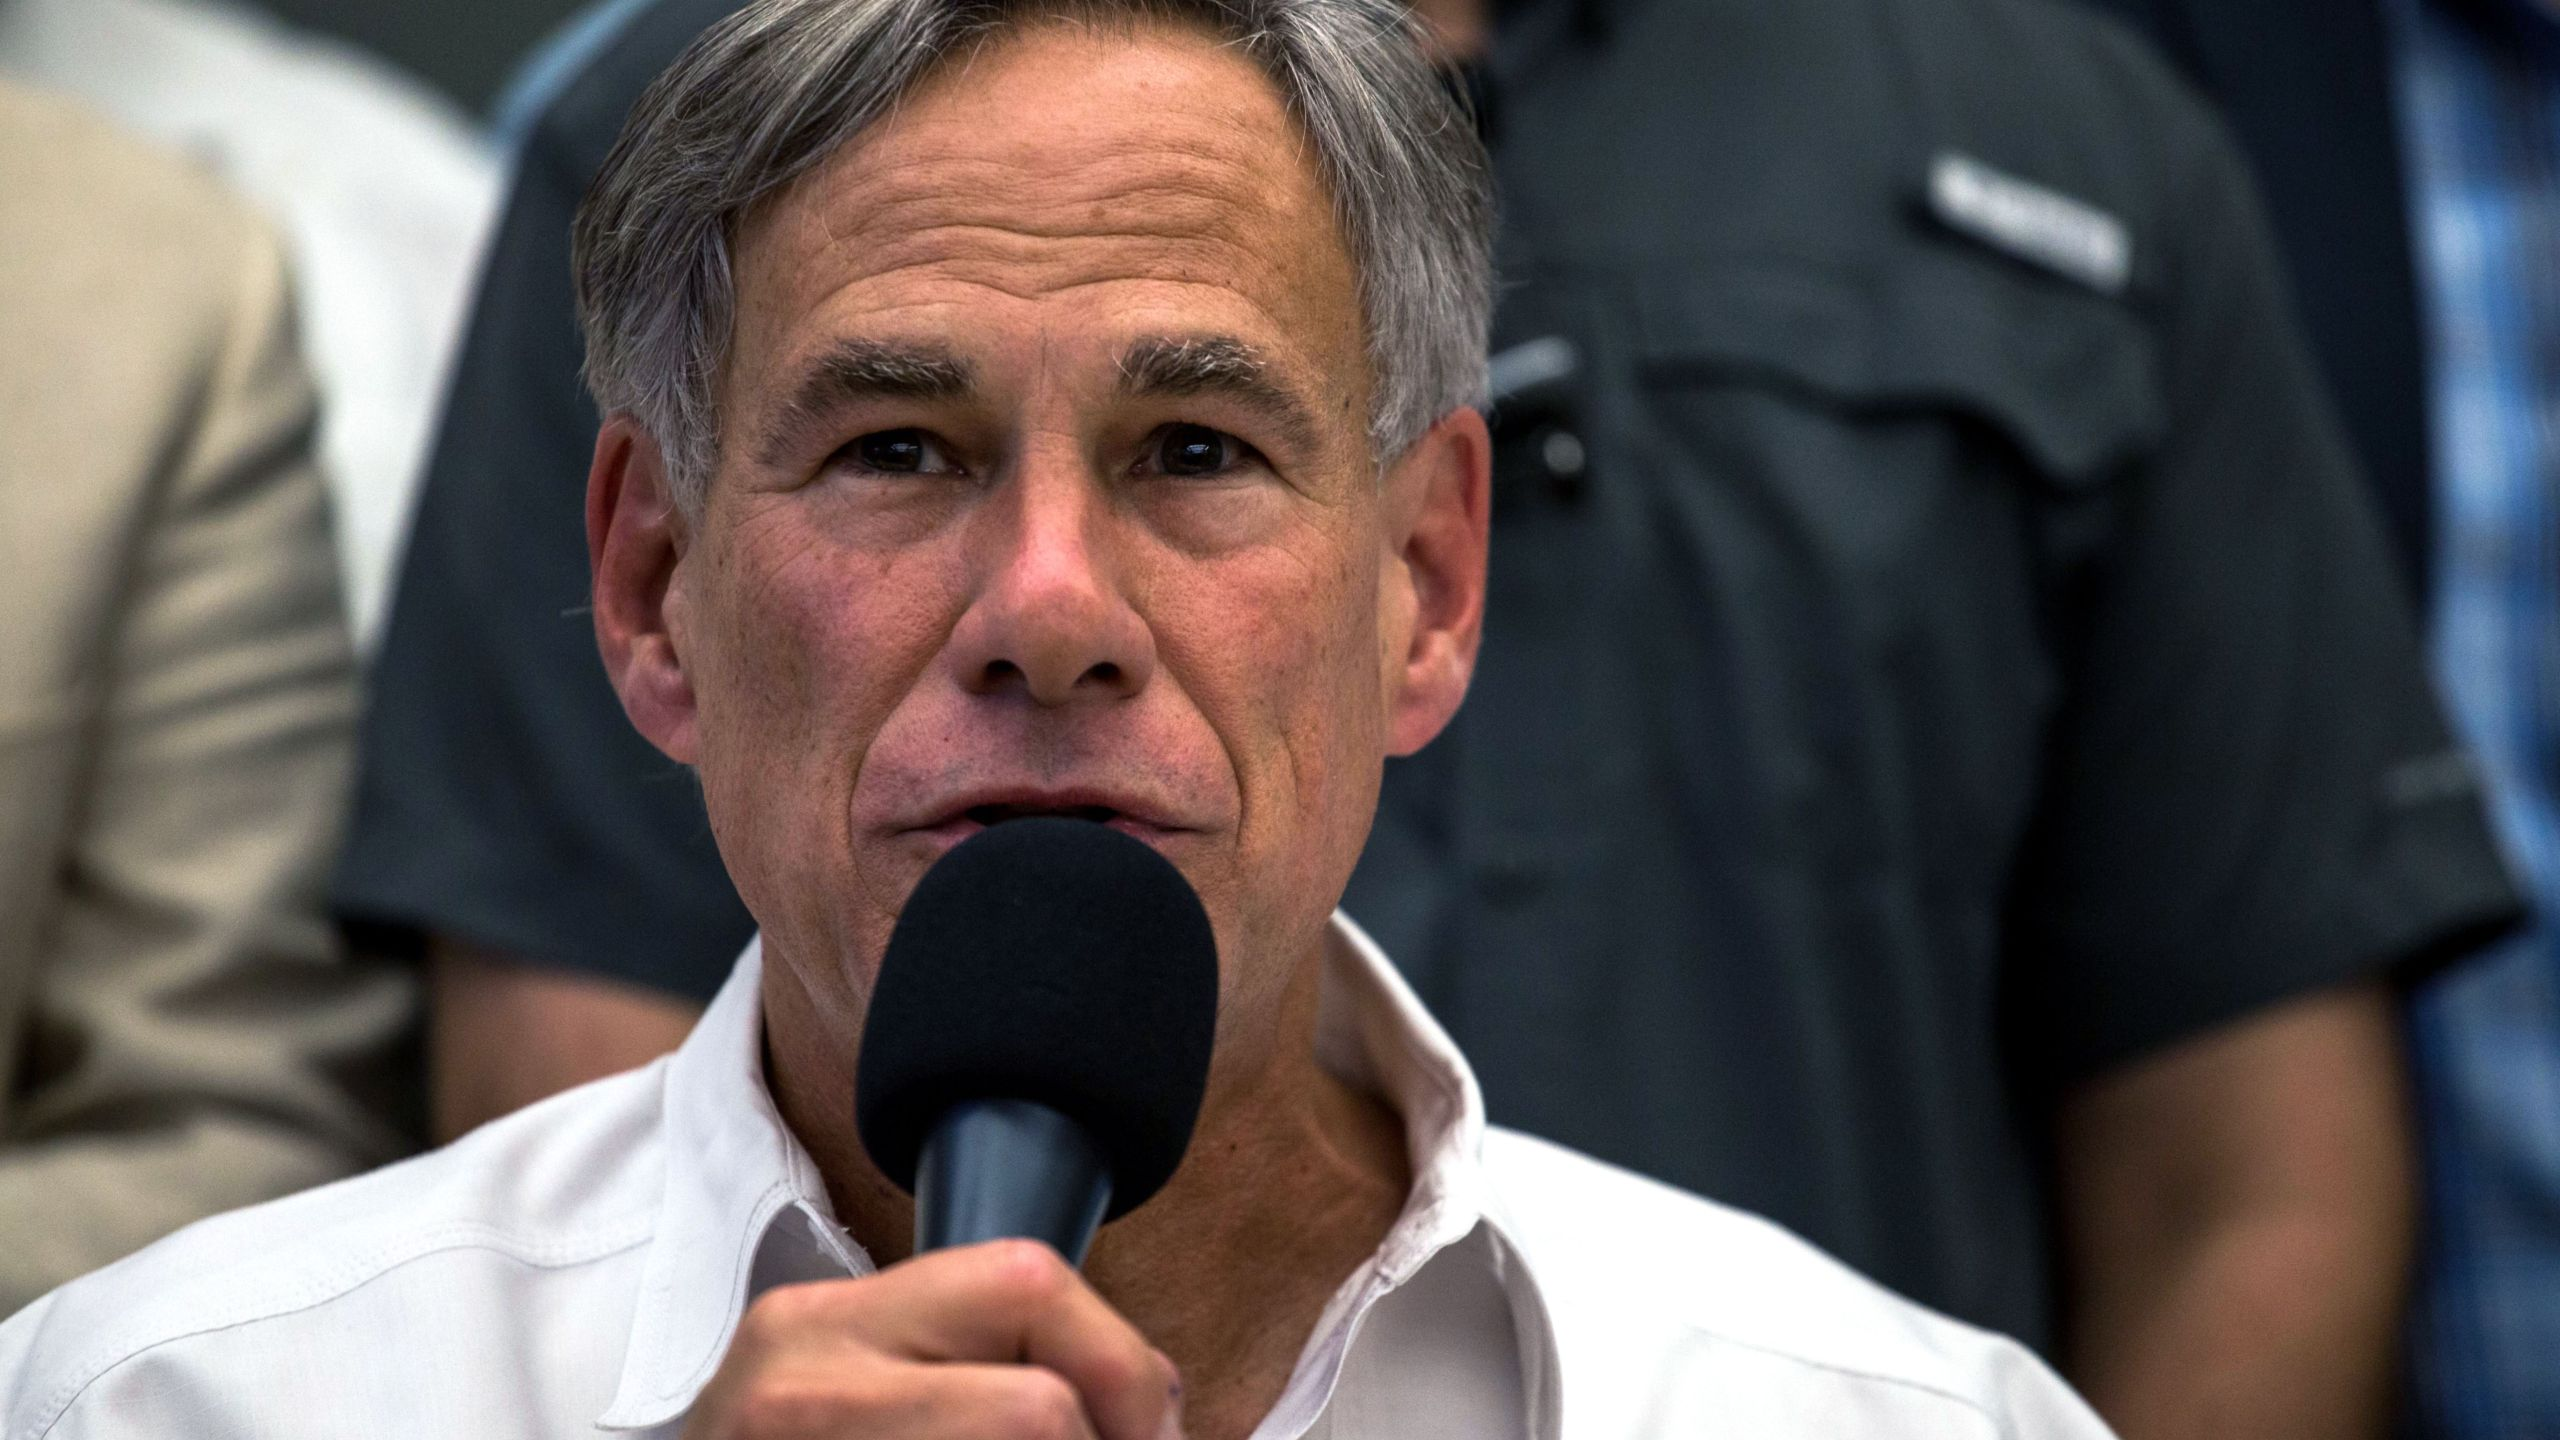 Texas Gov. Greg Abbott speaks during a press briefing, following a mass fatal shooting, at the El Paso Regional Communications Center in El Paso, Texas, on Aug. 3, 2019.(Credit: JOEL ANGEL JUAREZ/AFP/Getty Images)